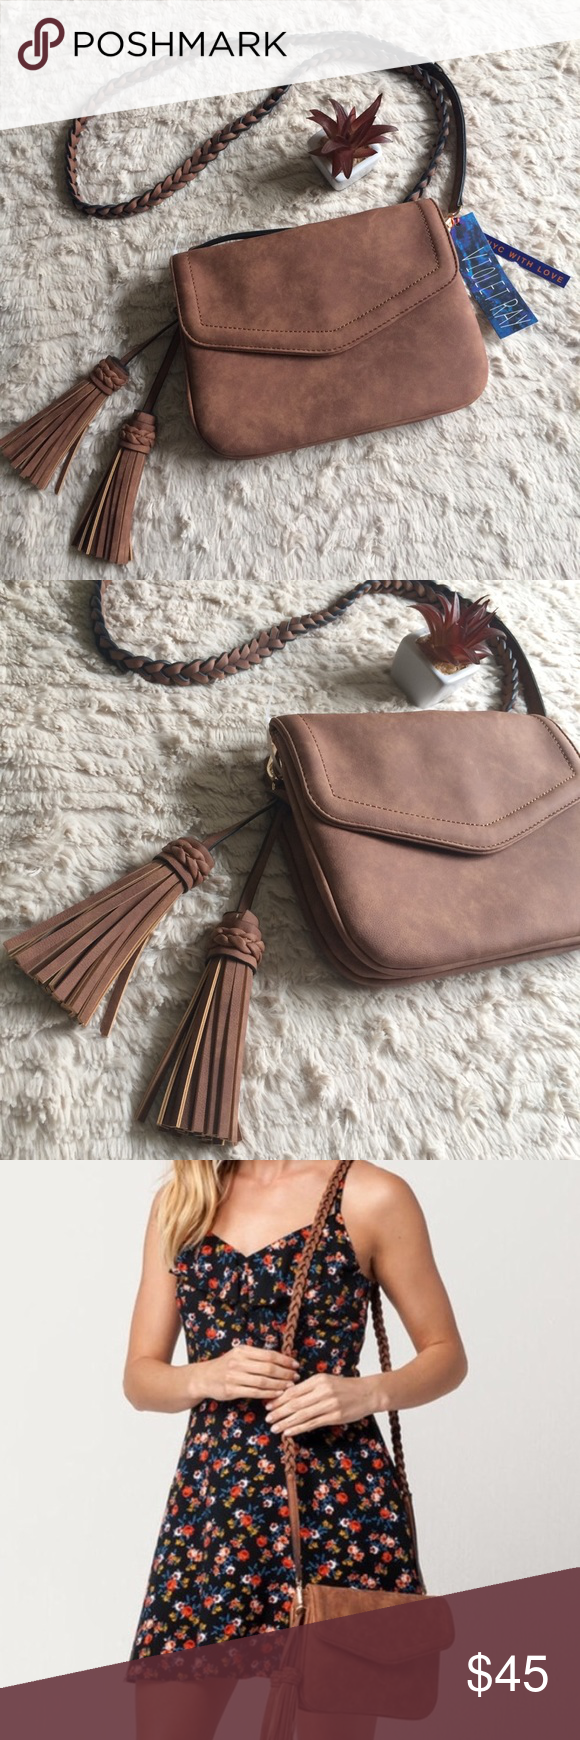 bf146f59ba80 Violet Ray Anette Crossbody Chestnut 🌰 Free People Line Brand- Violet Ray  Anette faux leather